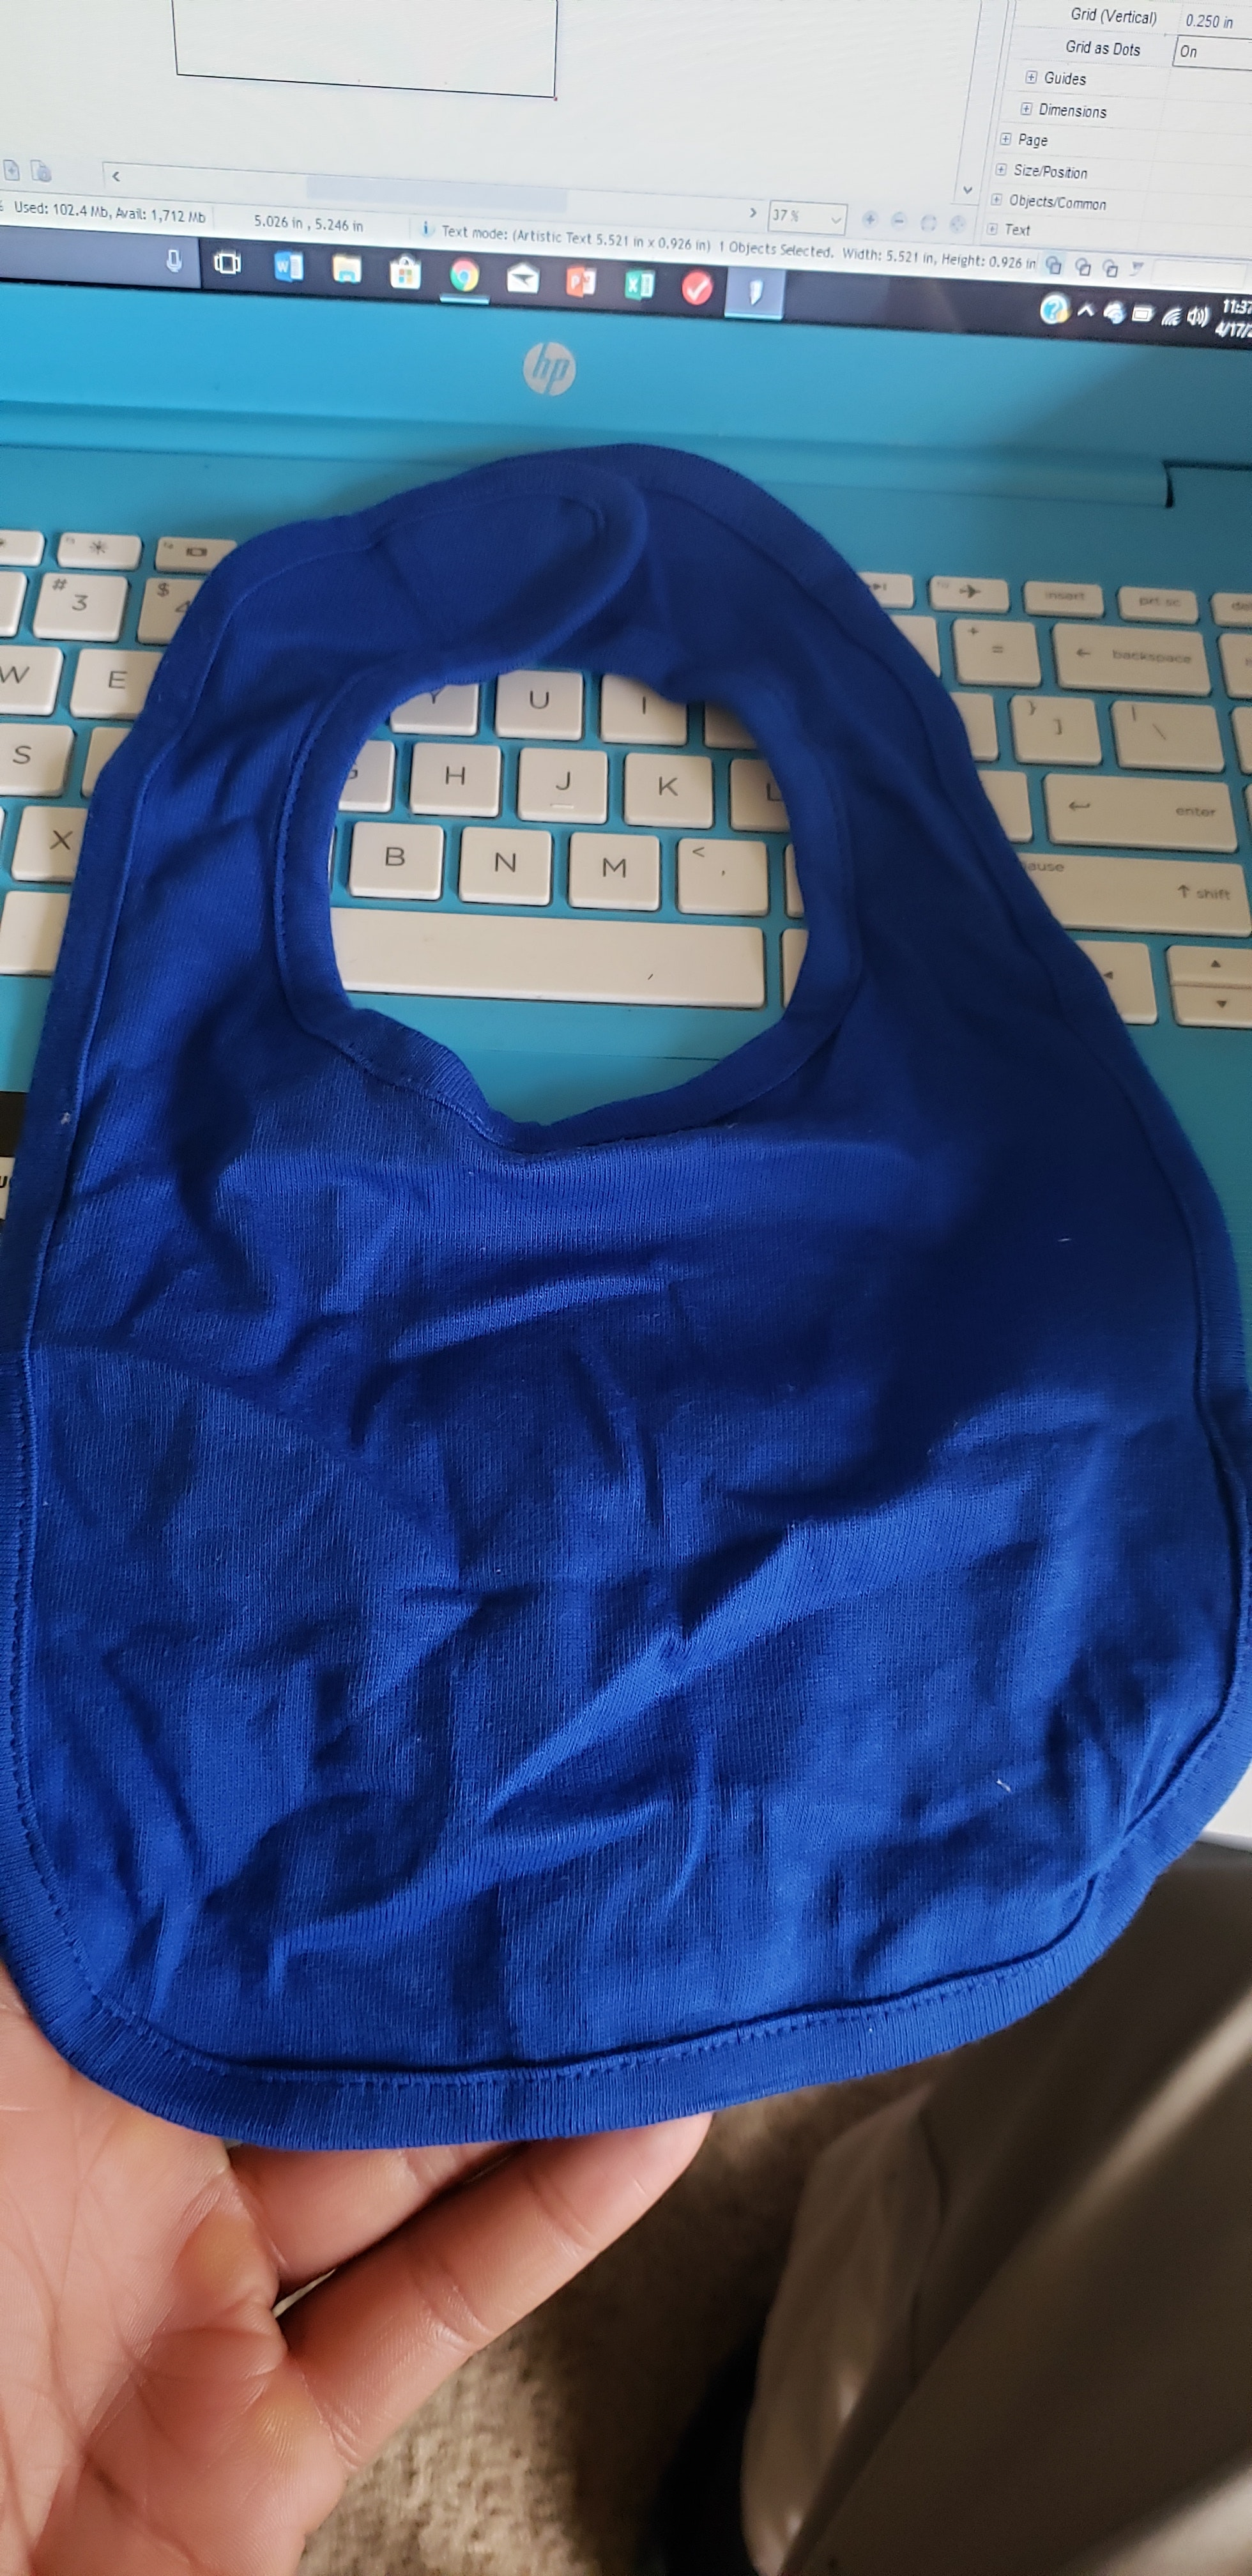 Rabbit Skins RS1005 customer review by Rodshun Webster Baby bibs